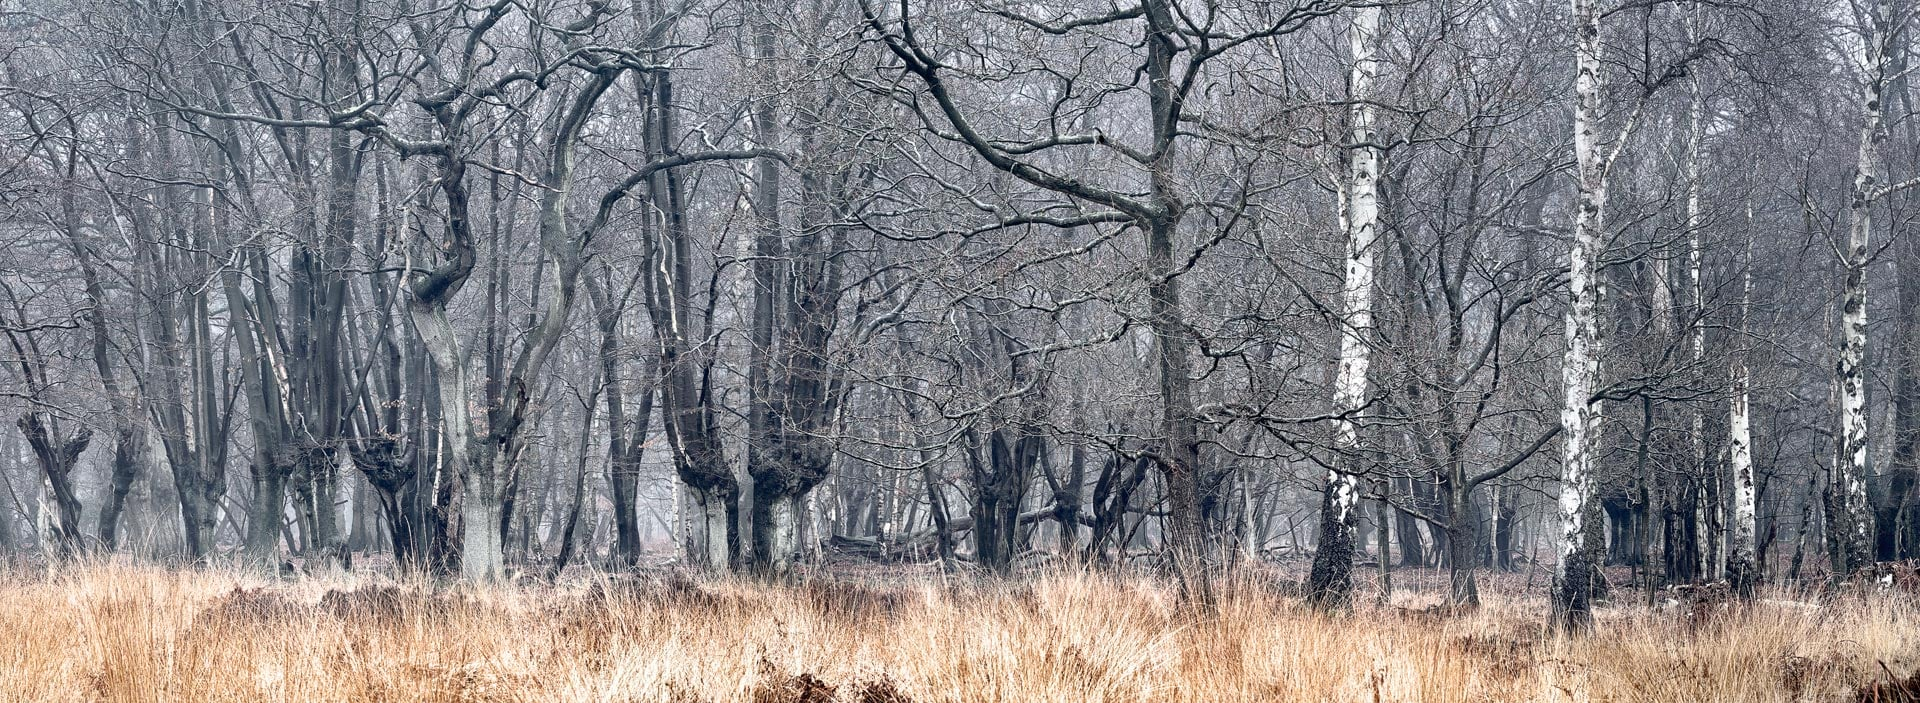 Forest view in winter. Epping Forest, Essex, England, UK